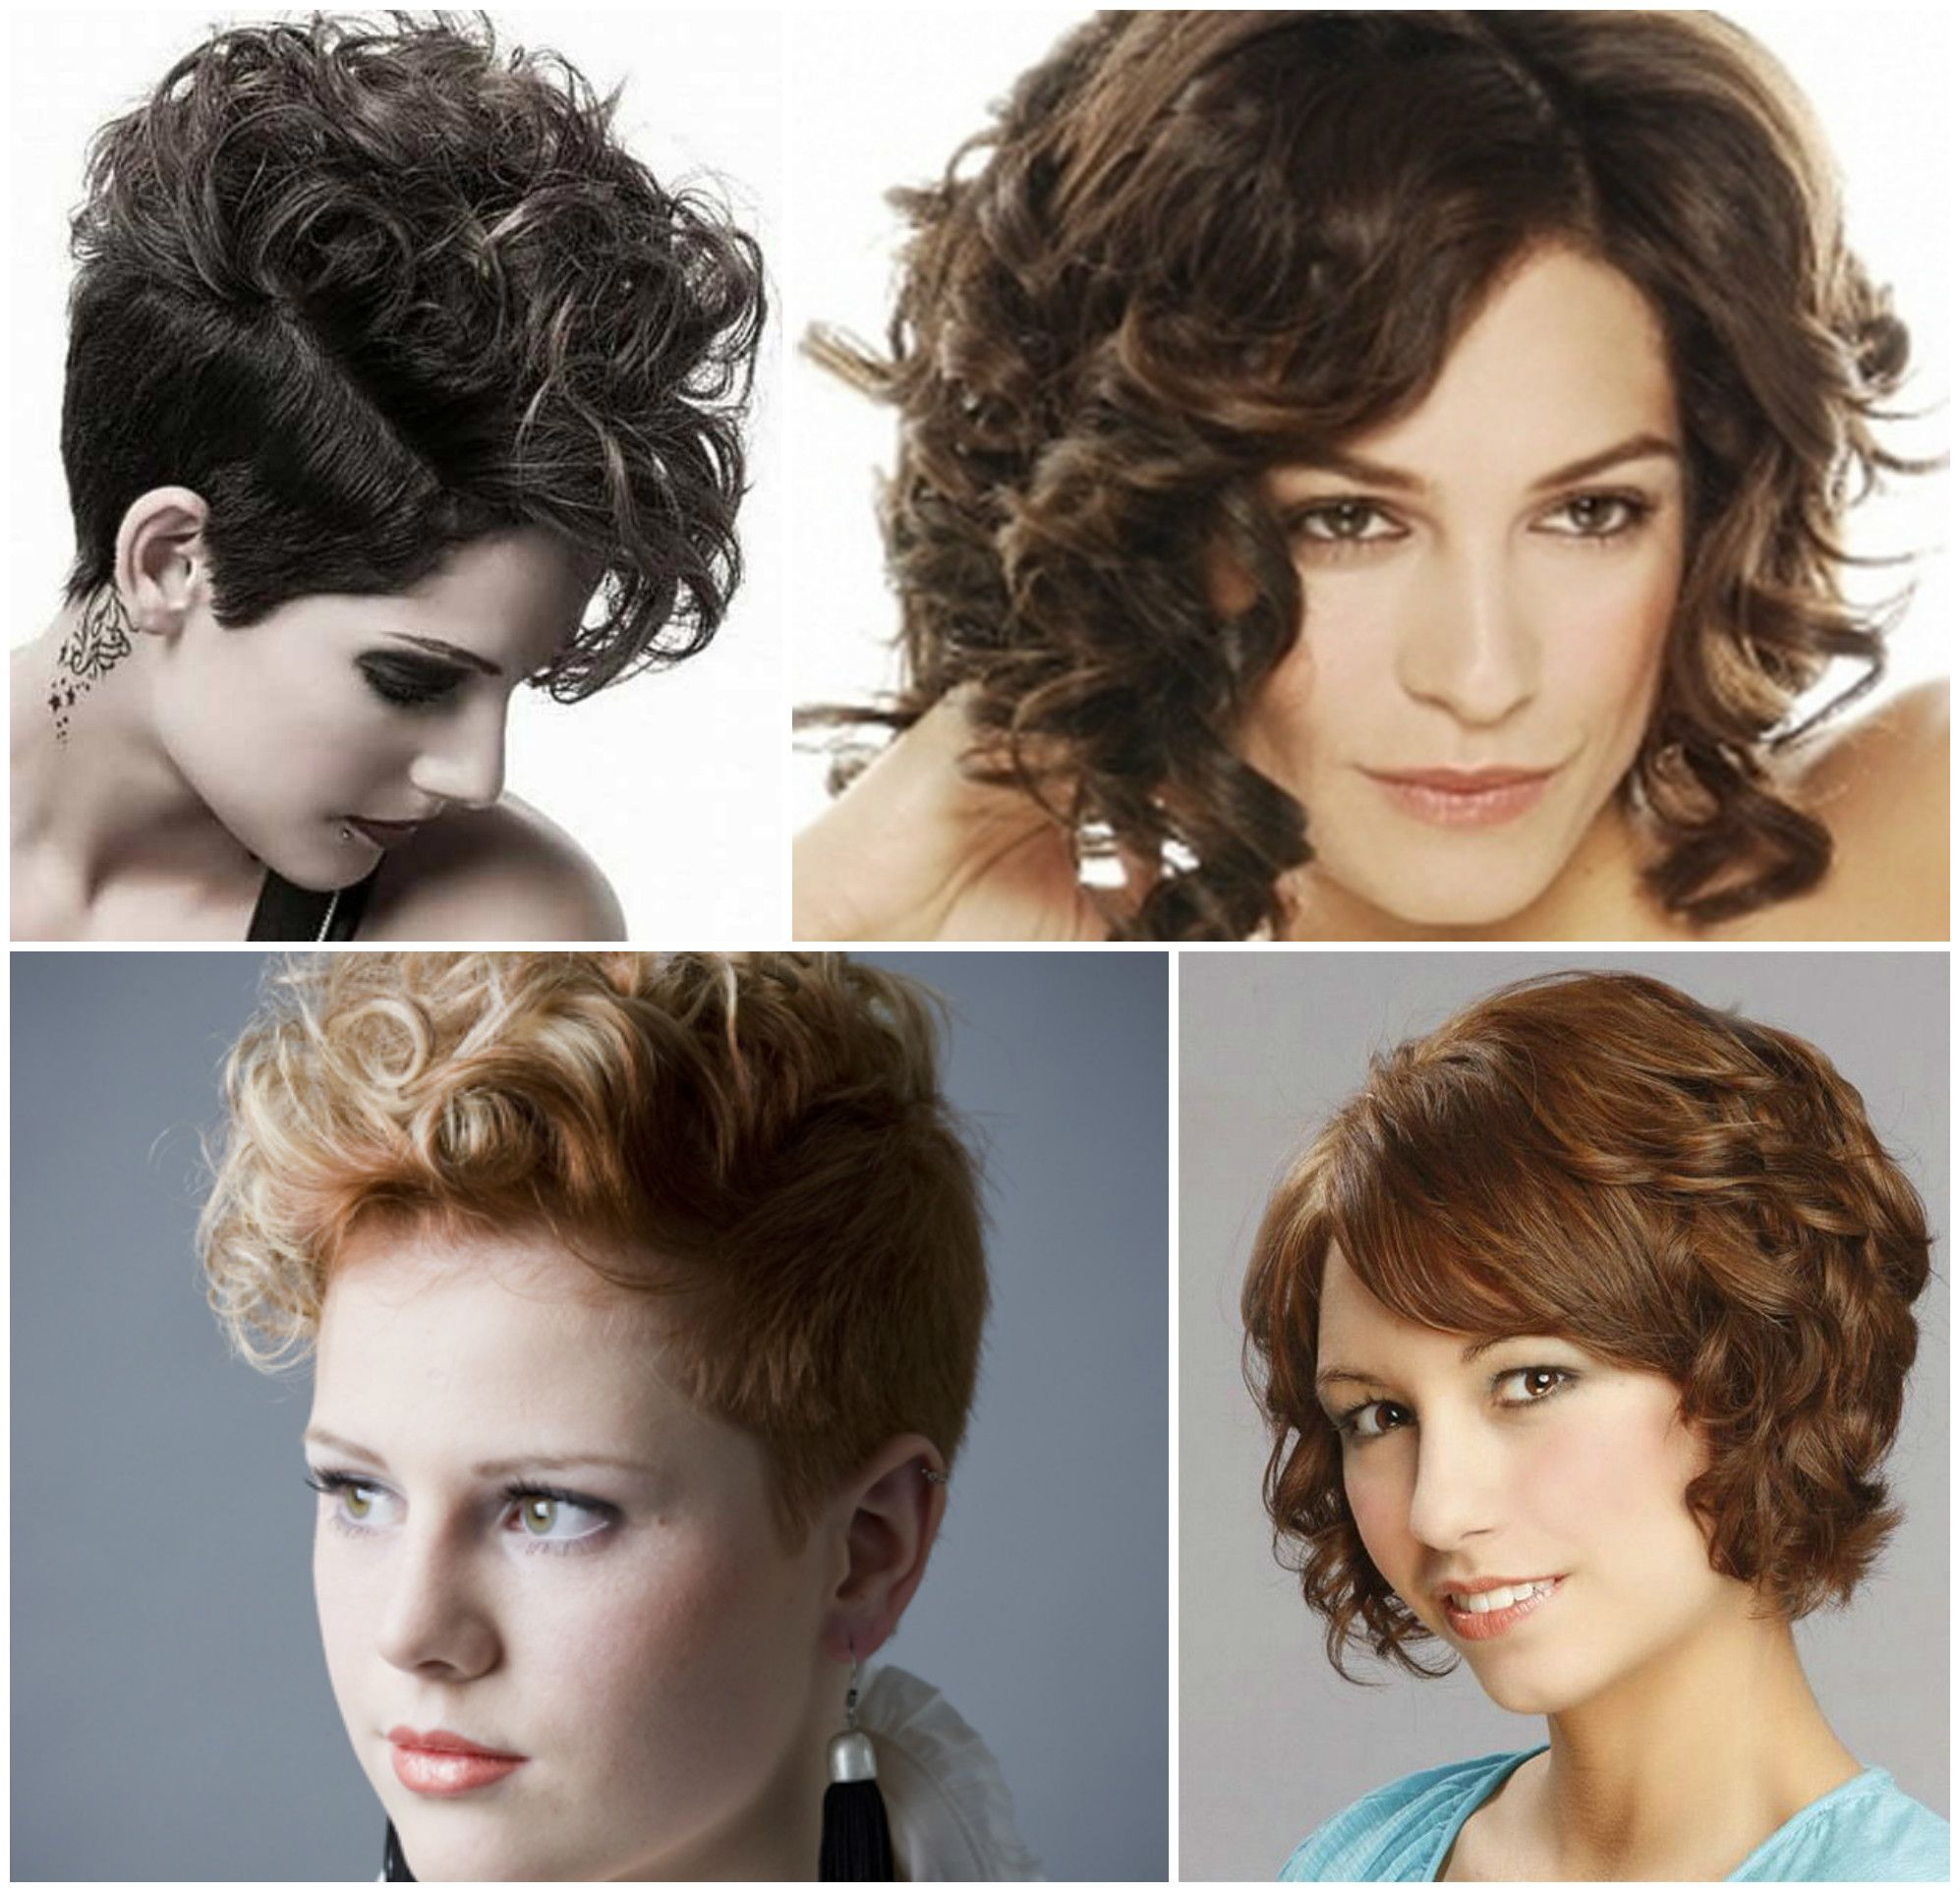 The Best Short and Curly Hairstyles  Click for other hair styles